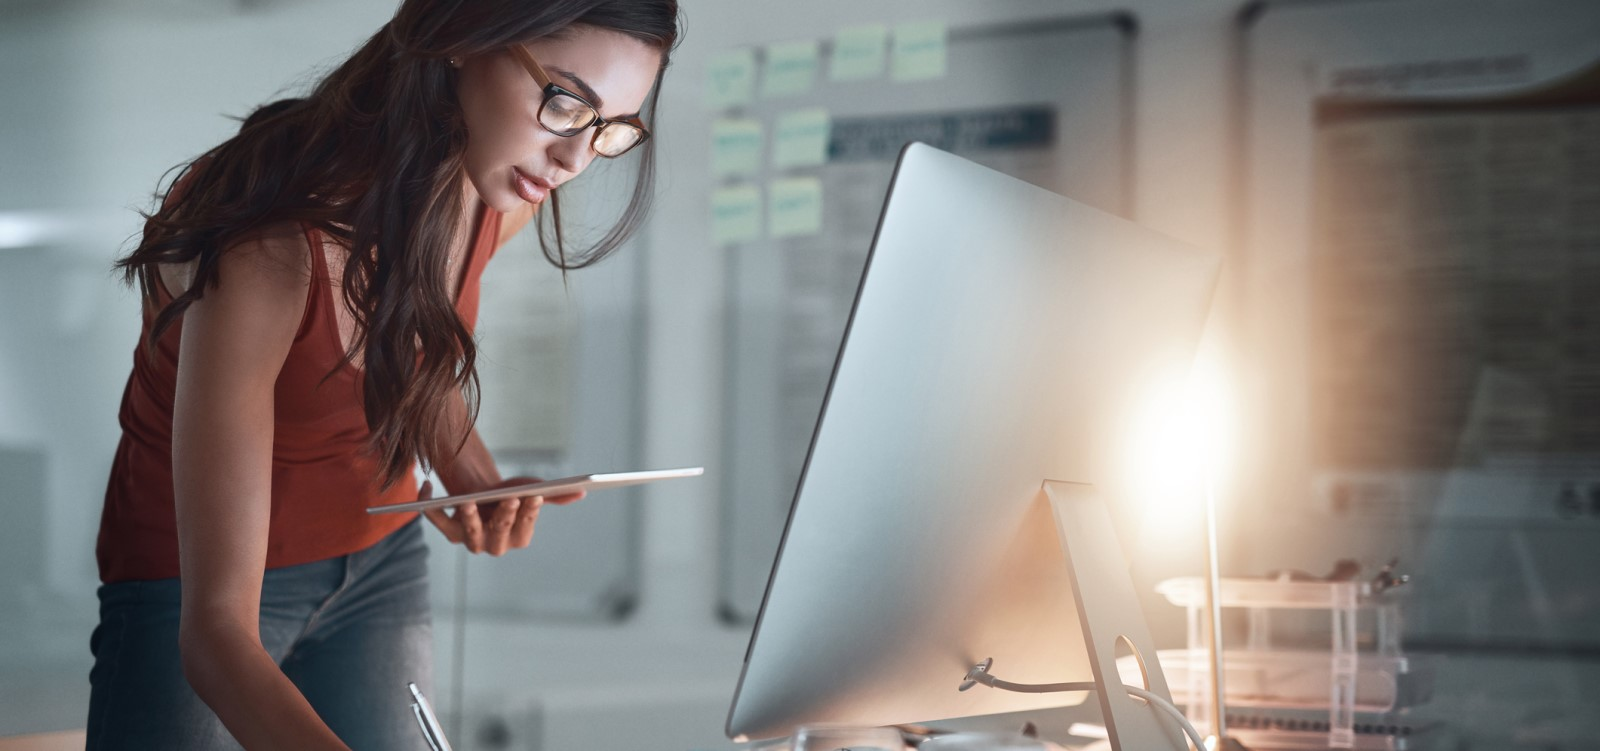 business woman taking notes | payroll sales rep standing out in the professional services industry